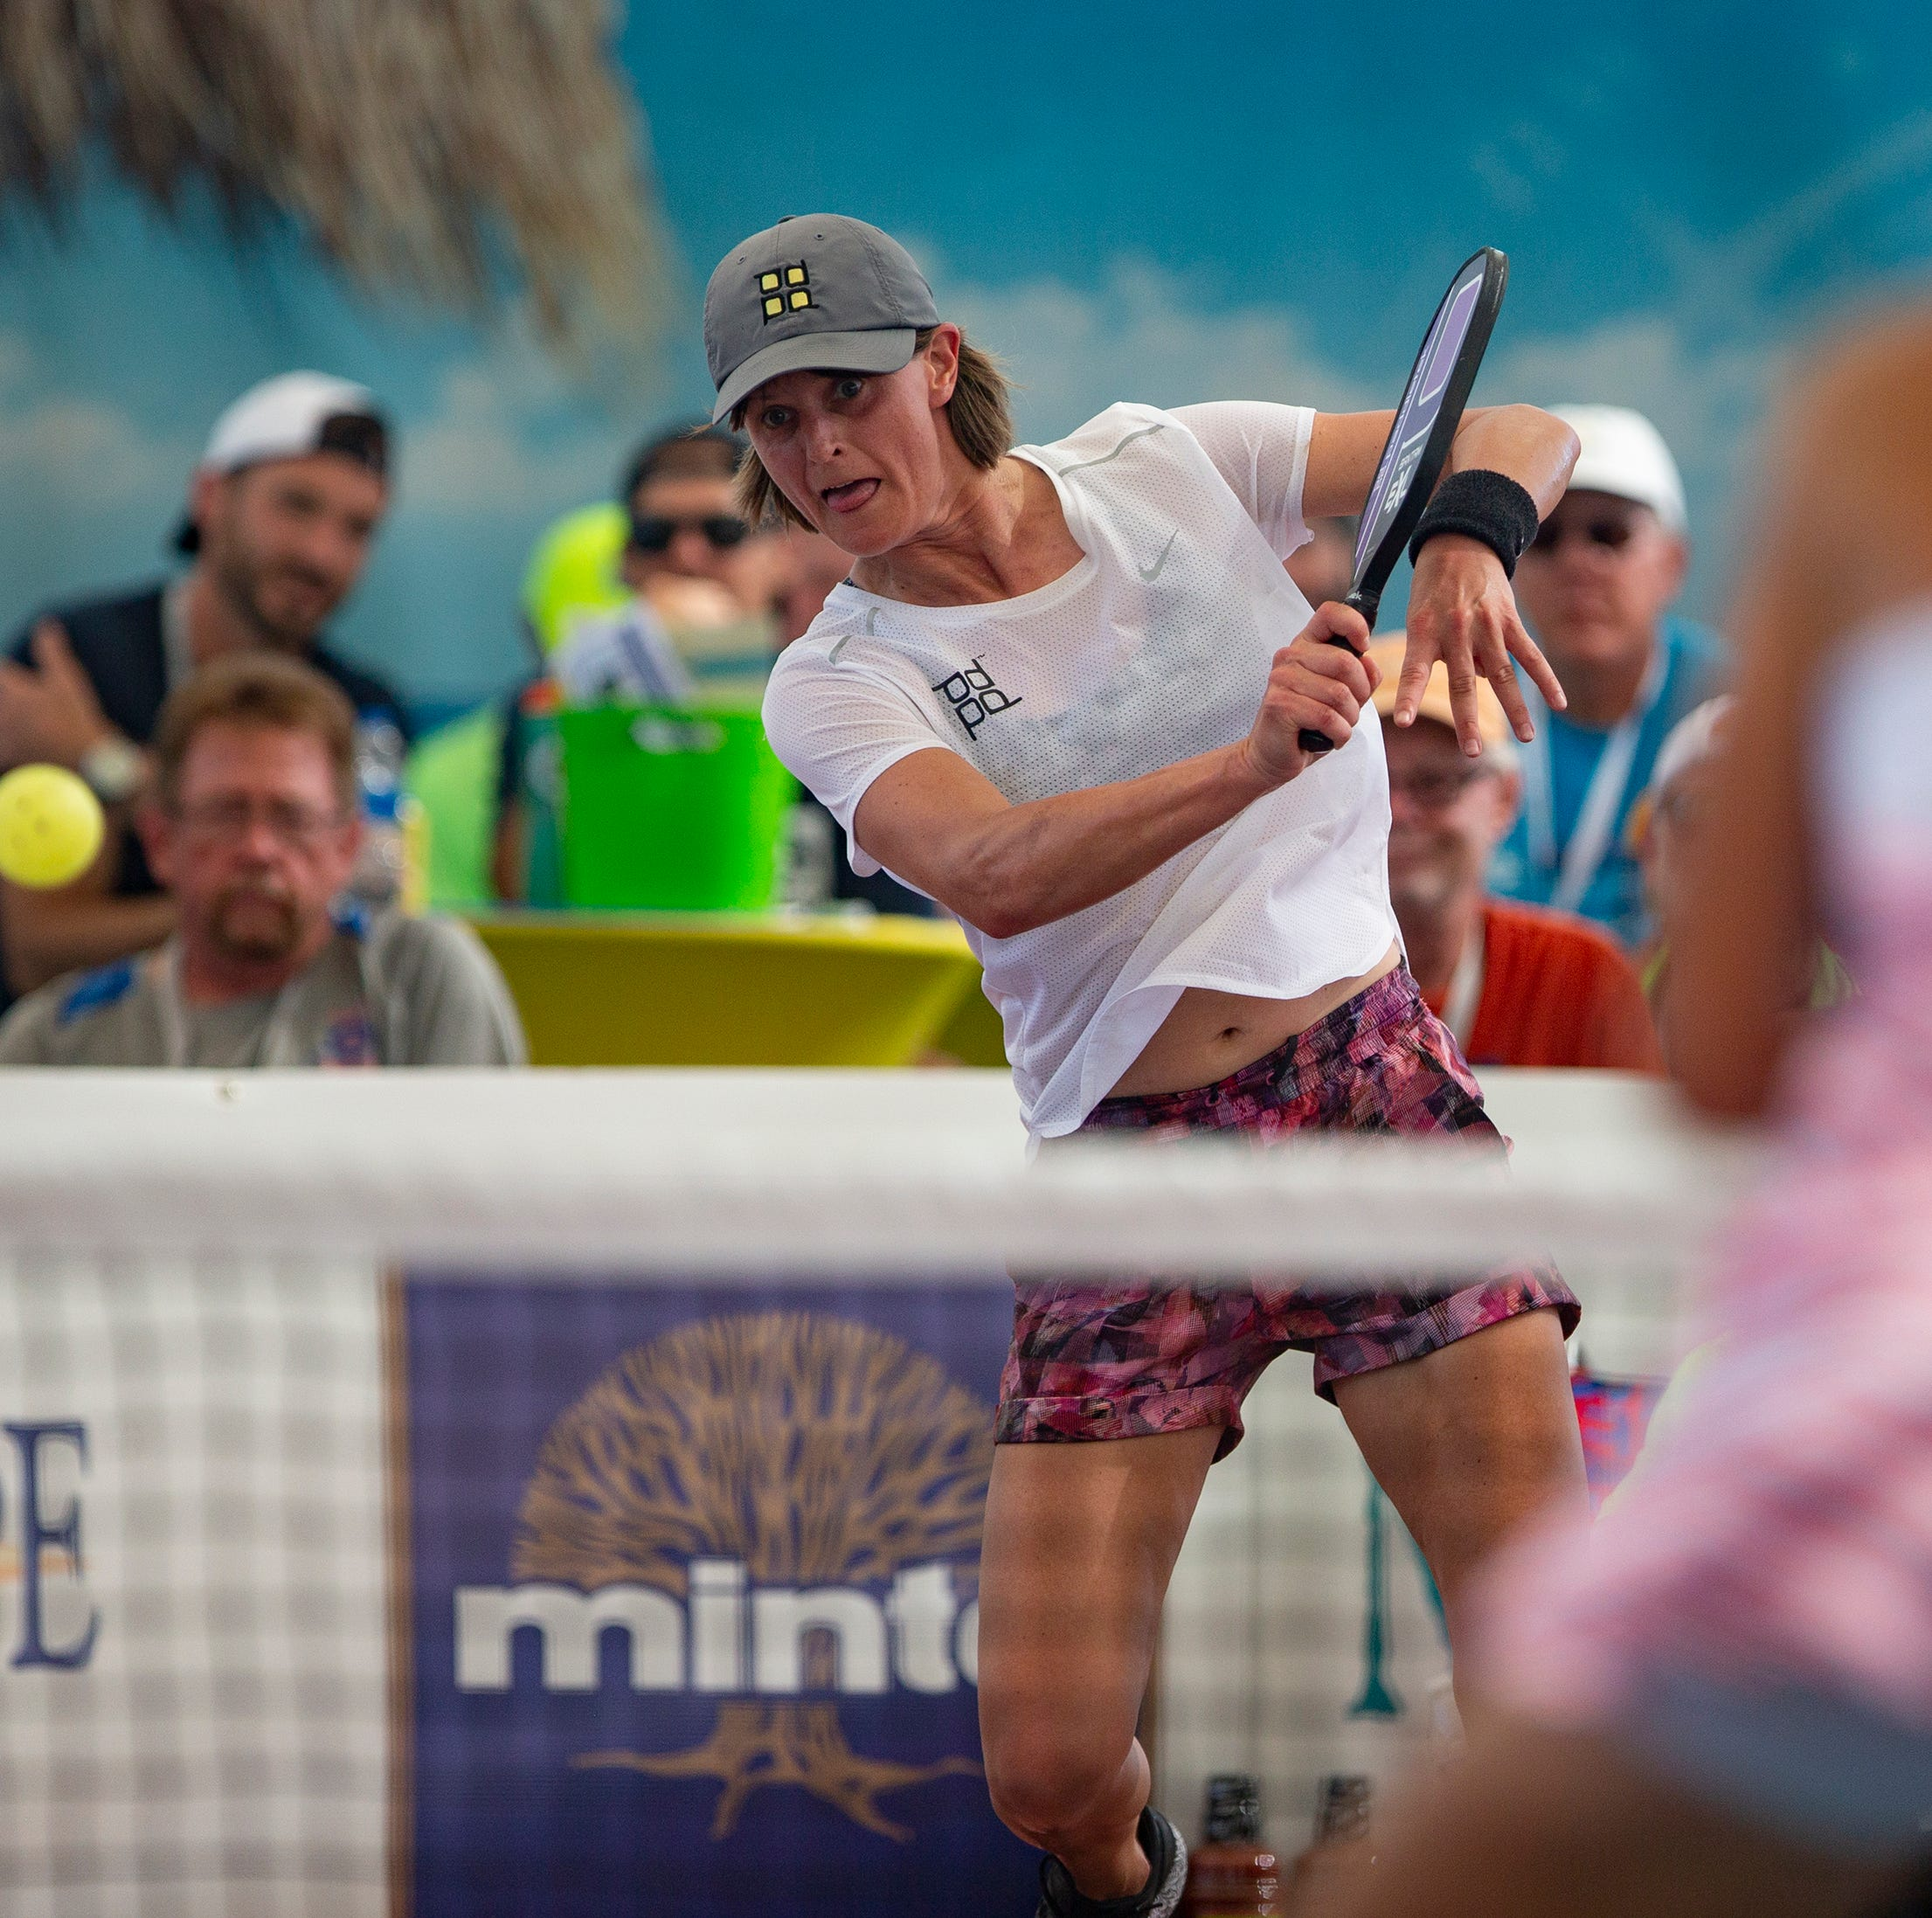 U.S. Open Pickleball Championships: Friday/early Saturday results